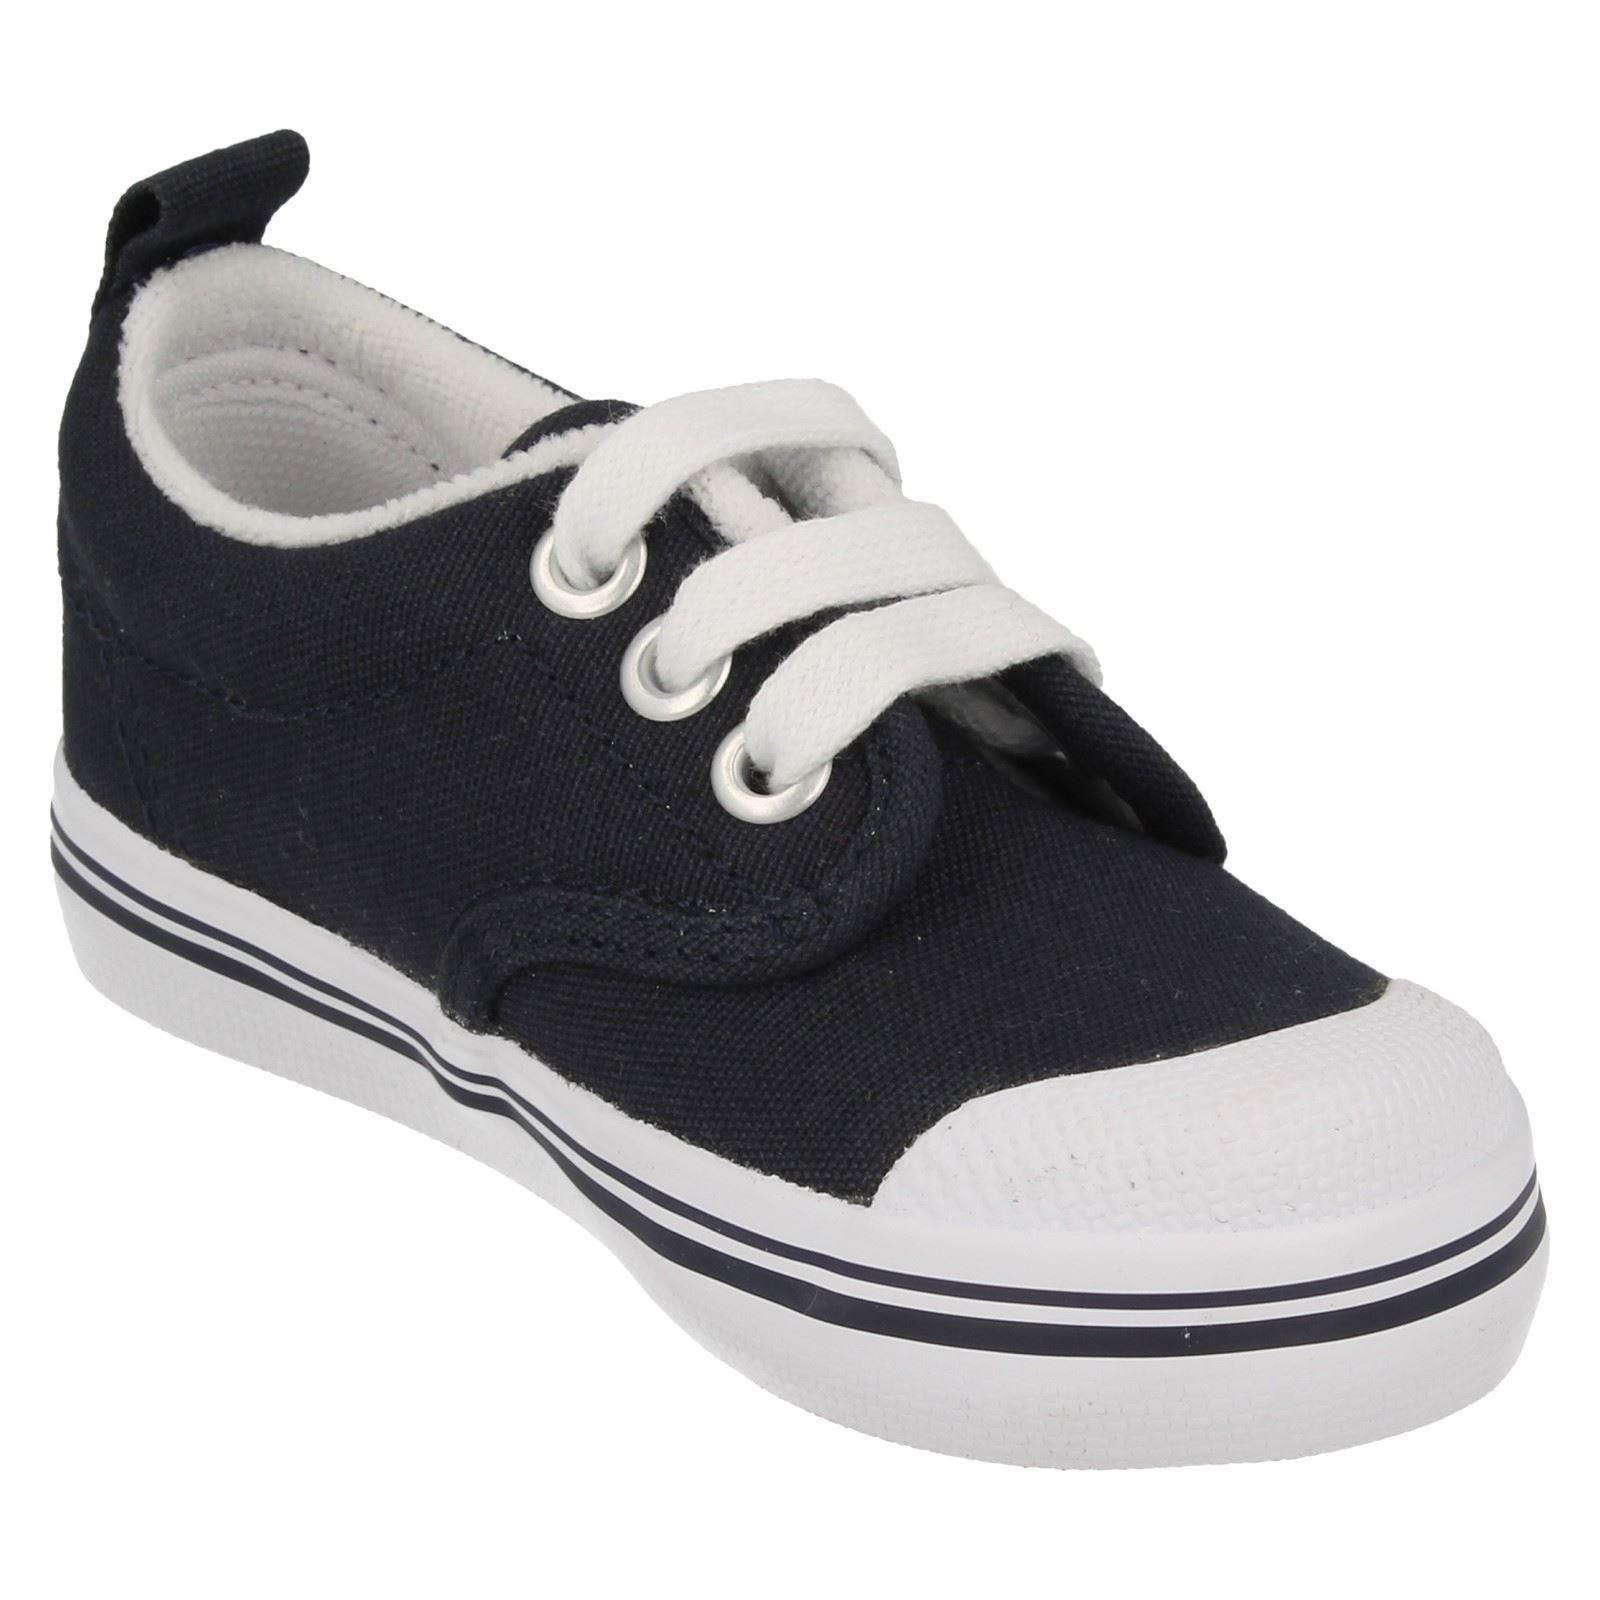 Infant//Baby Boys Keds Casual Rounded Toe Lace Up Canvas Pumps Scooter